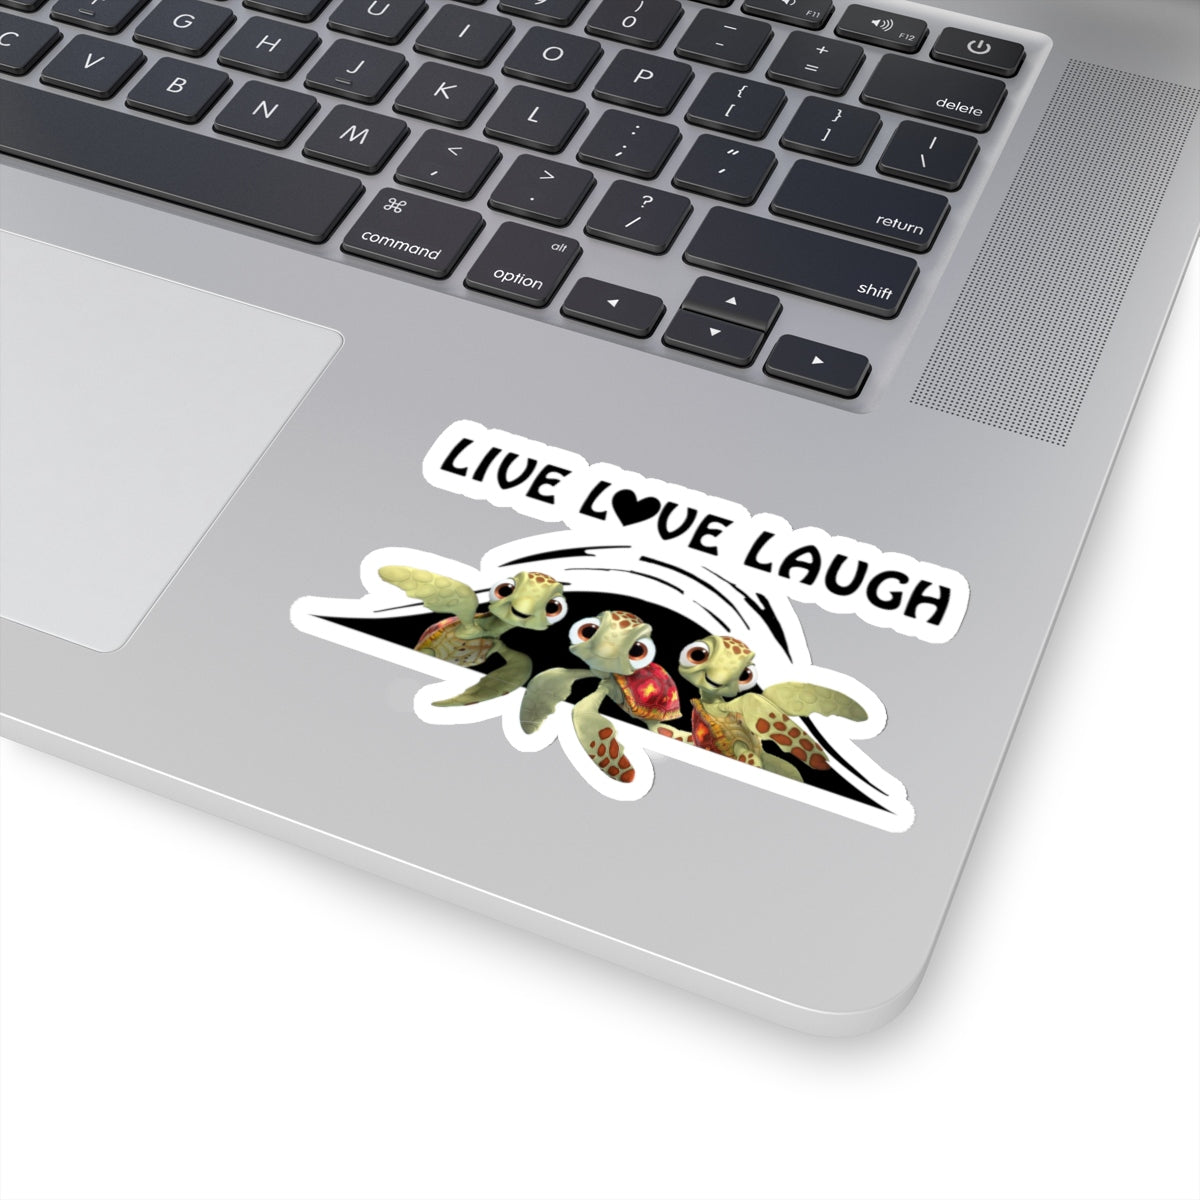 Live Love Laugh Turtle Kiss-Cut Stickers